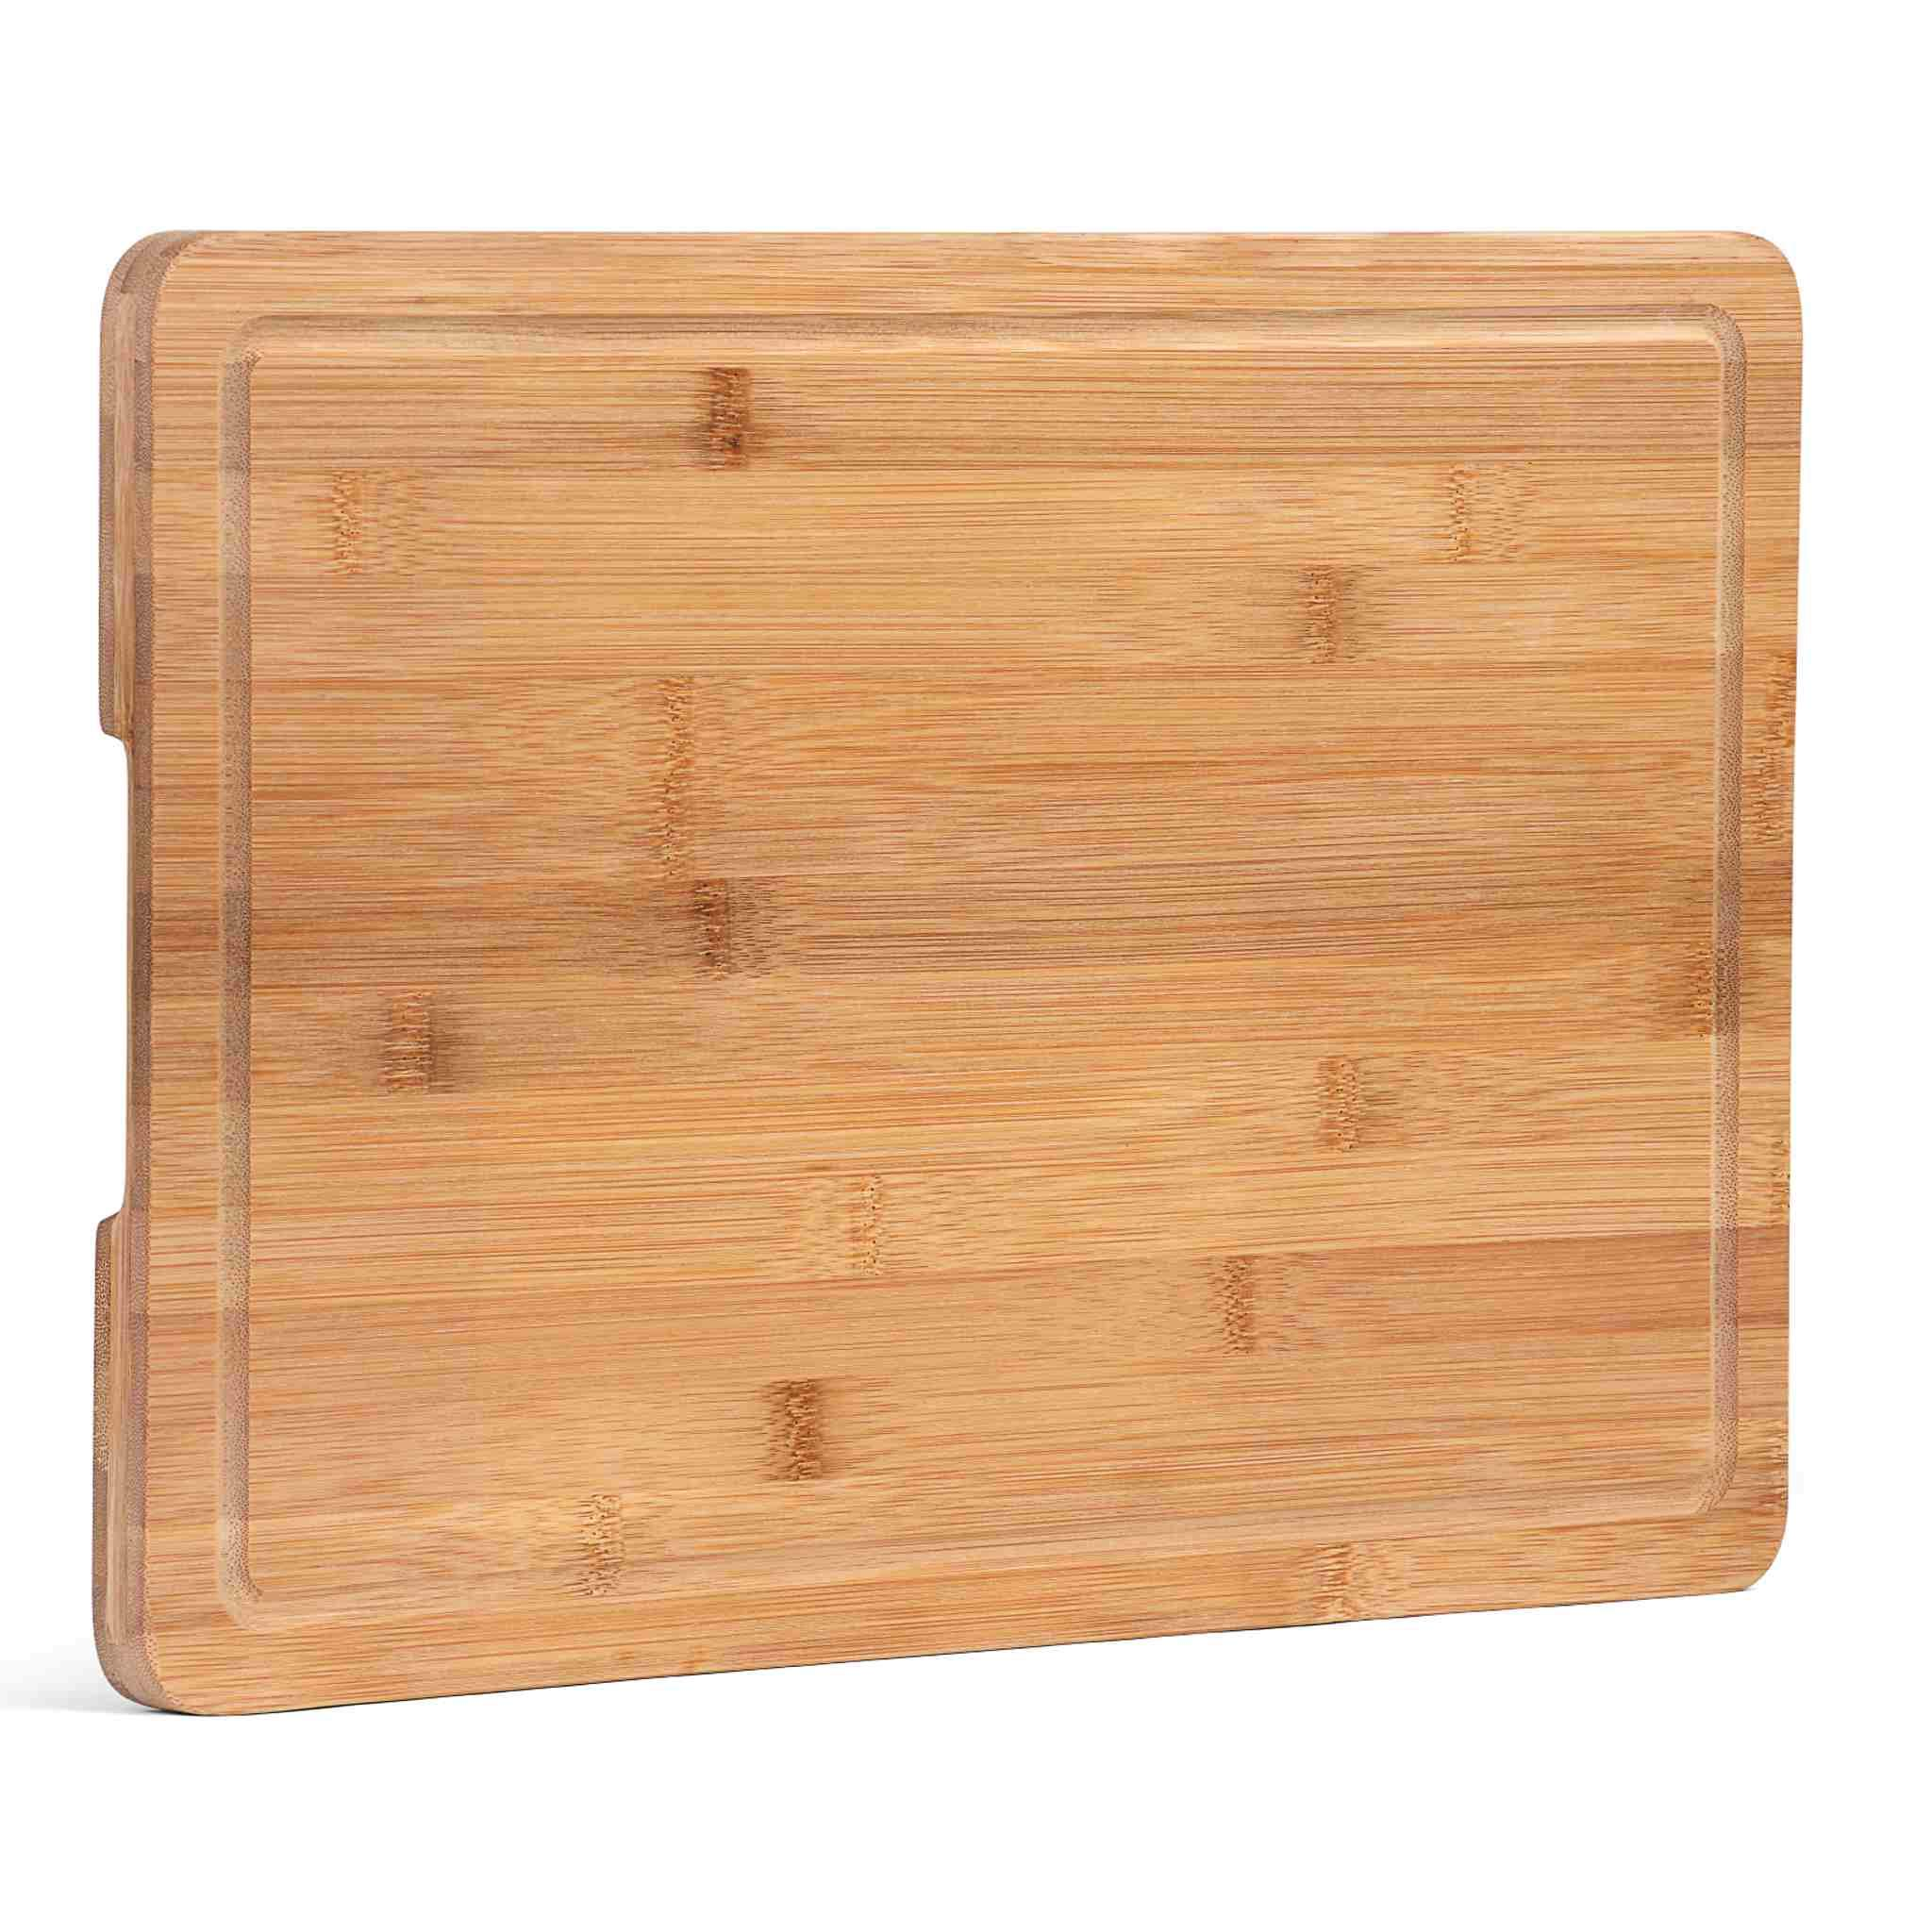 Bamboo Cutting Board with Juice Groove, Extra Large (18x12''), Cutting board for Kitchen, Chopping Board for Meat (Butcher Block), Cheese board, Charcuterie board, Reversible Serving Tray with Handles